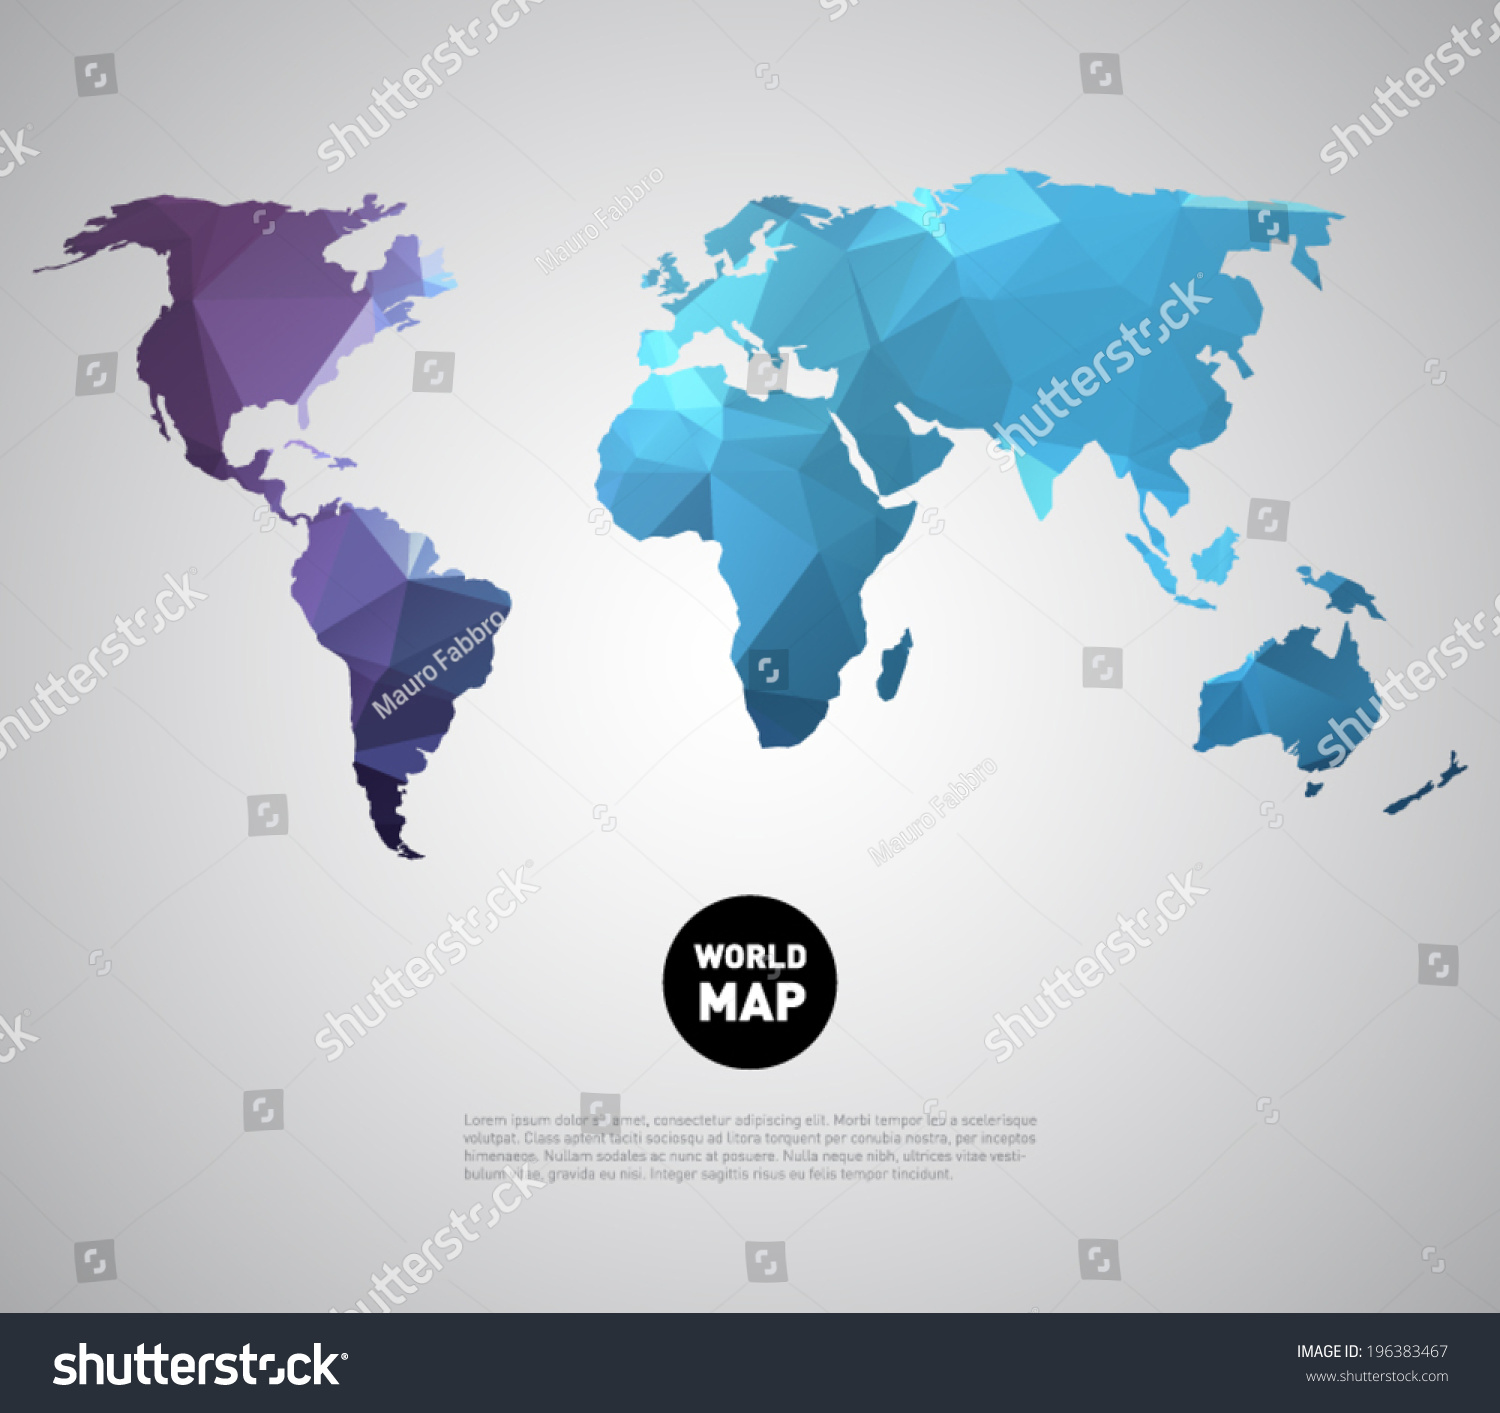 Abstract vector world map background polygonal vectores en stock abstract vector world map background with polygonal triangle style design clean and modern for gumiabroncs Image collections